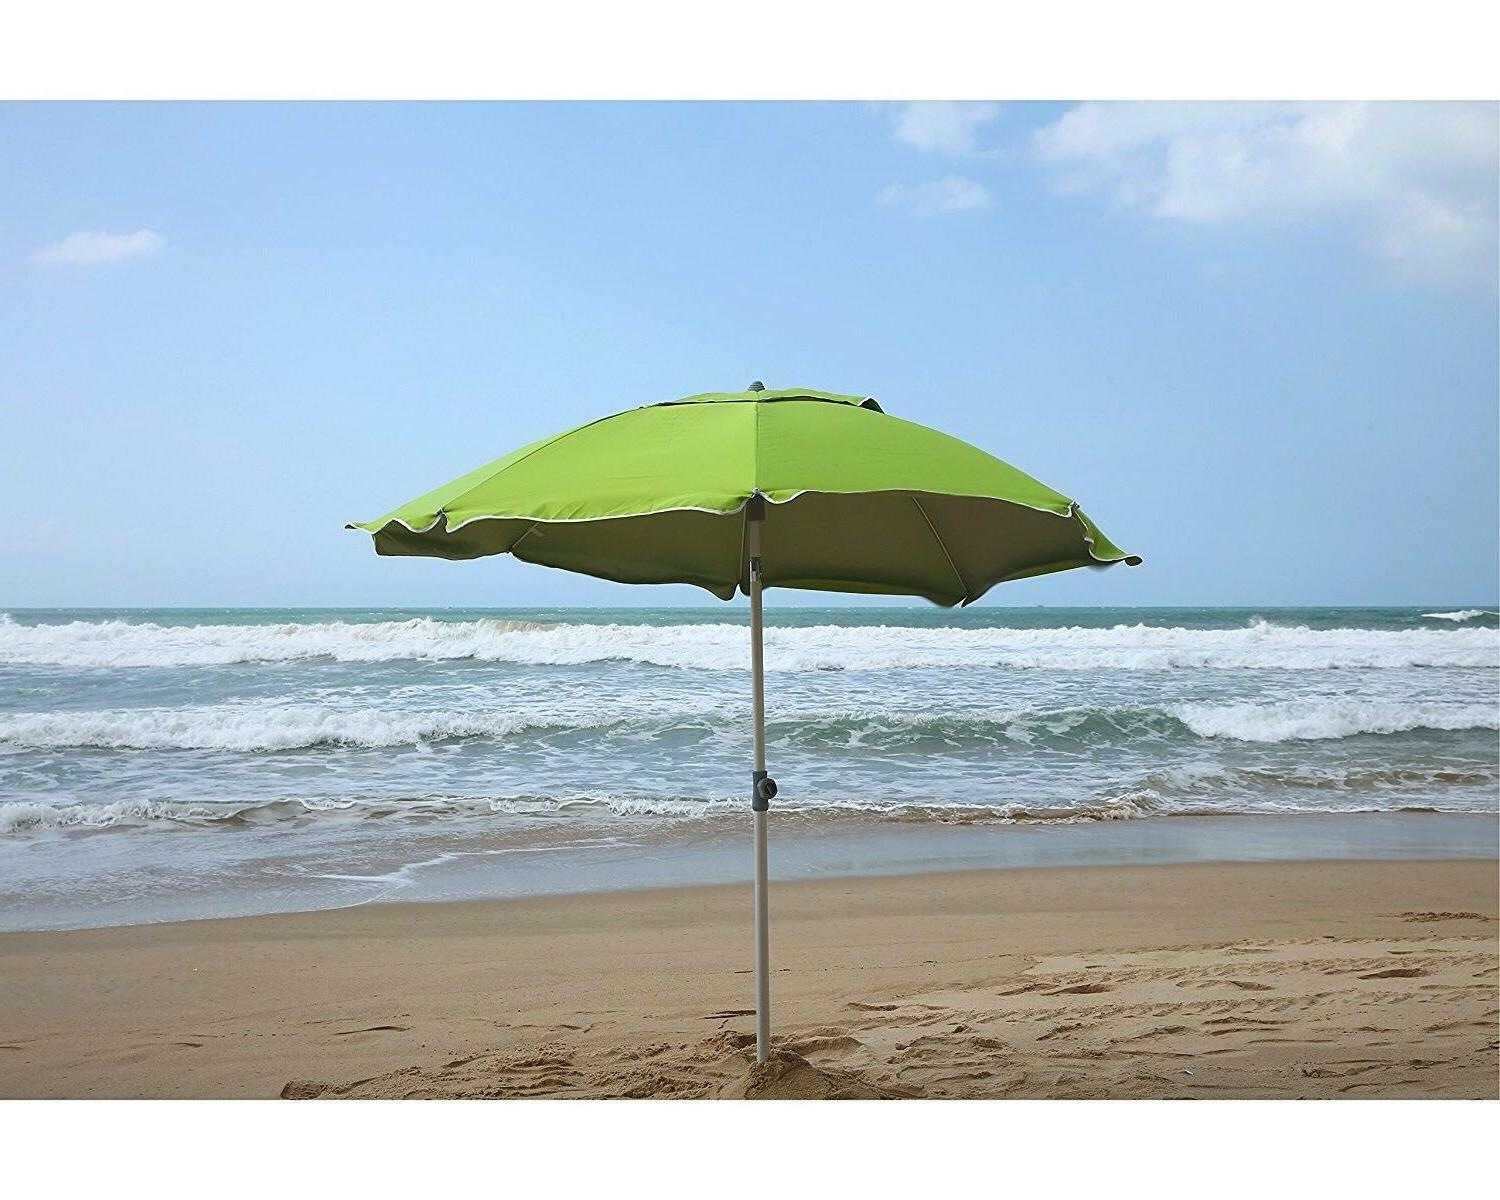 AMMSUN 6.5 8 Sand Anchor Beach Umbrella w/ Silver